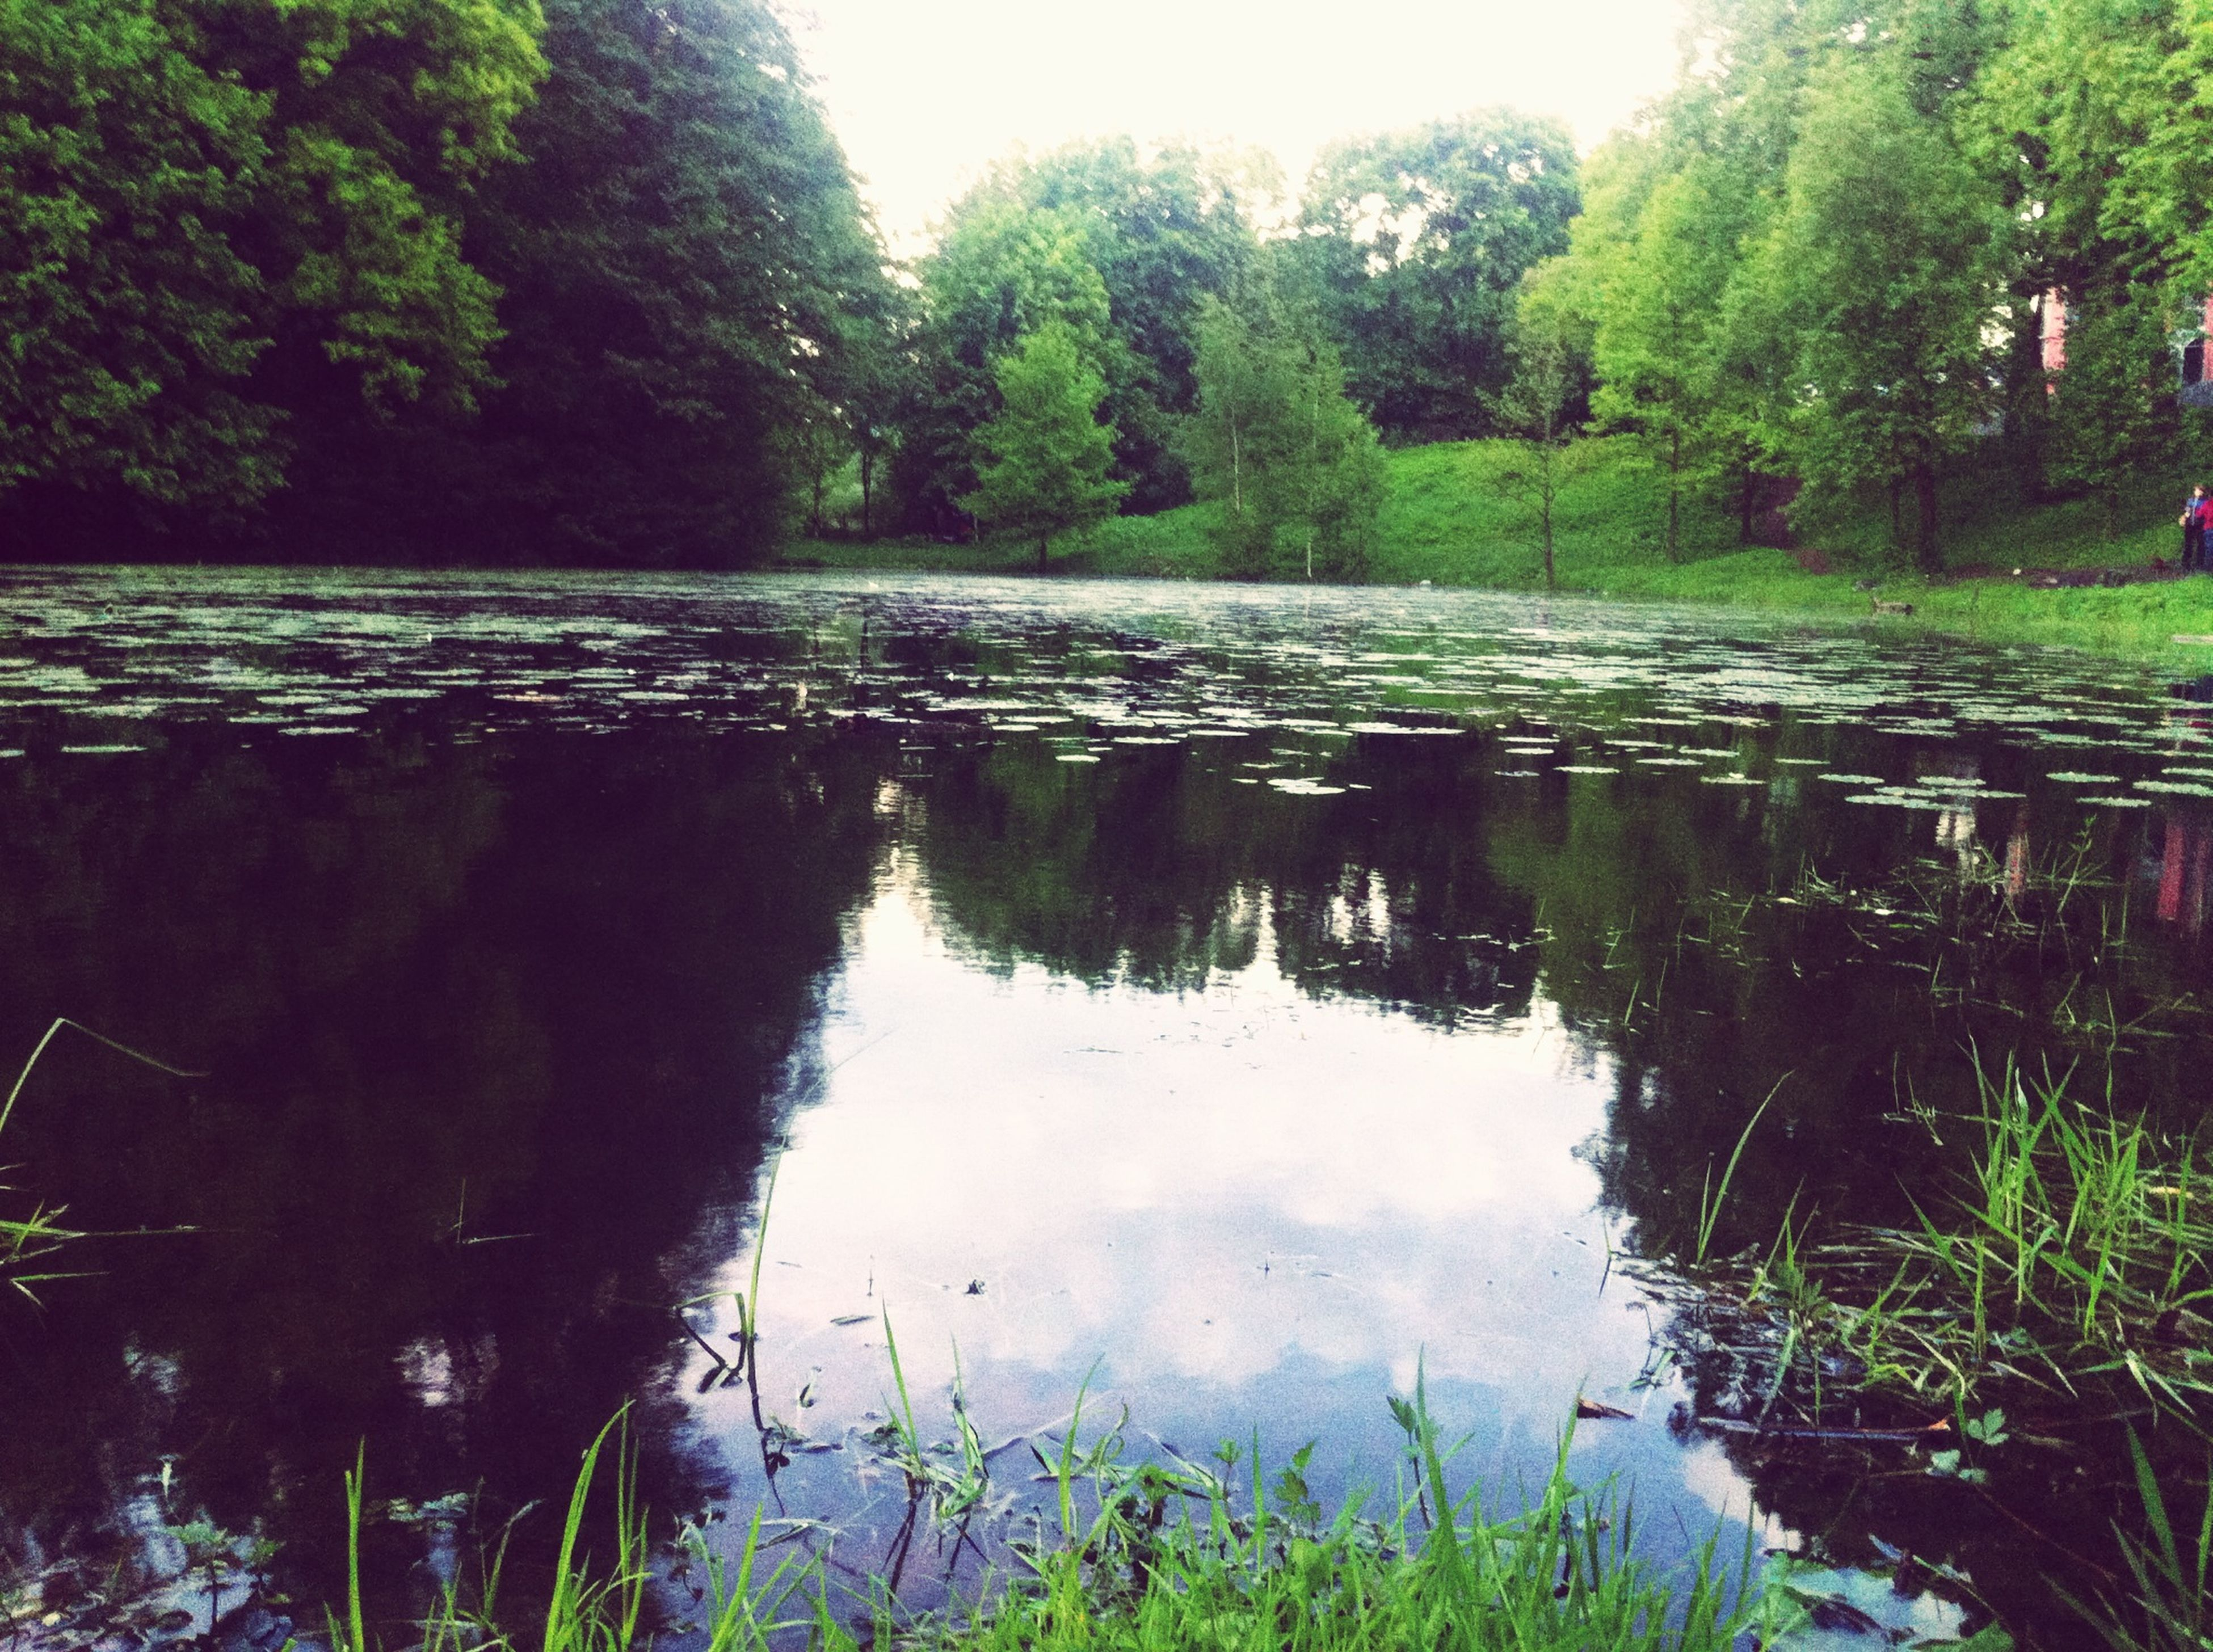 water, reflection, tree, lake, tranquility, tranquil scene, scenics, beauty in nature, green color, nature, growth, standing water, idyllic, plant, day, grass, pond, sky, calm, outdoors